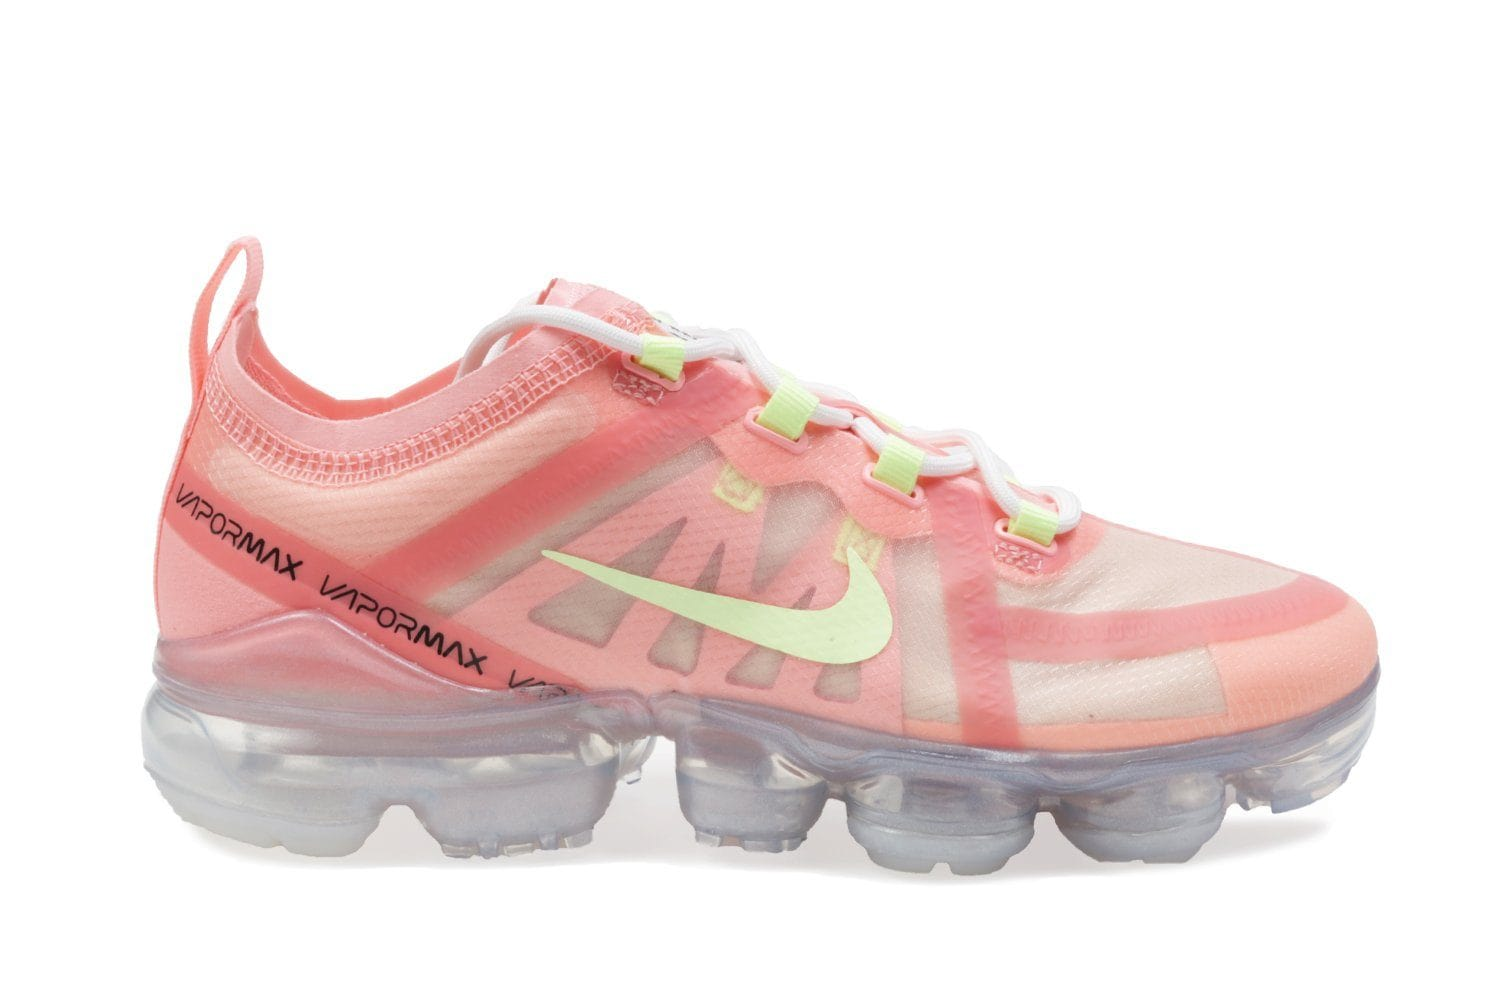 WMNS AIR VAPORMAX 2019 - AR6632-602 WOMENS FOOTWEAR NIKE 6 PINK TINT/BARELY VOLT-LIGHT CREAM